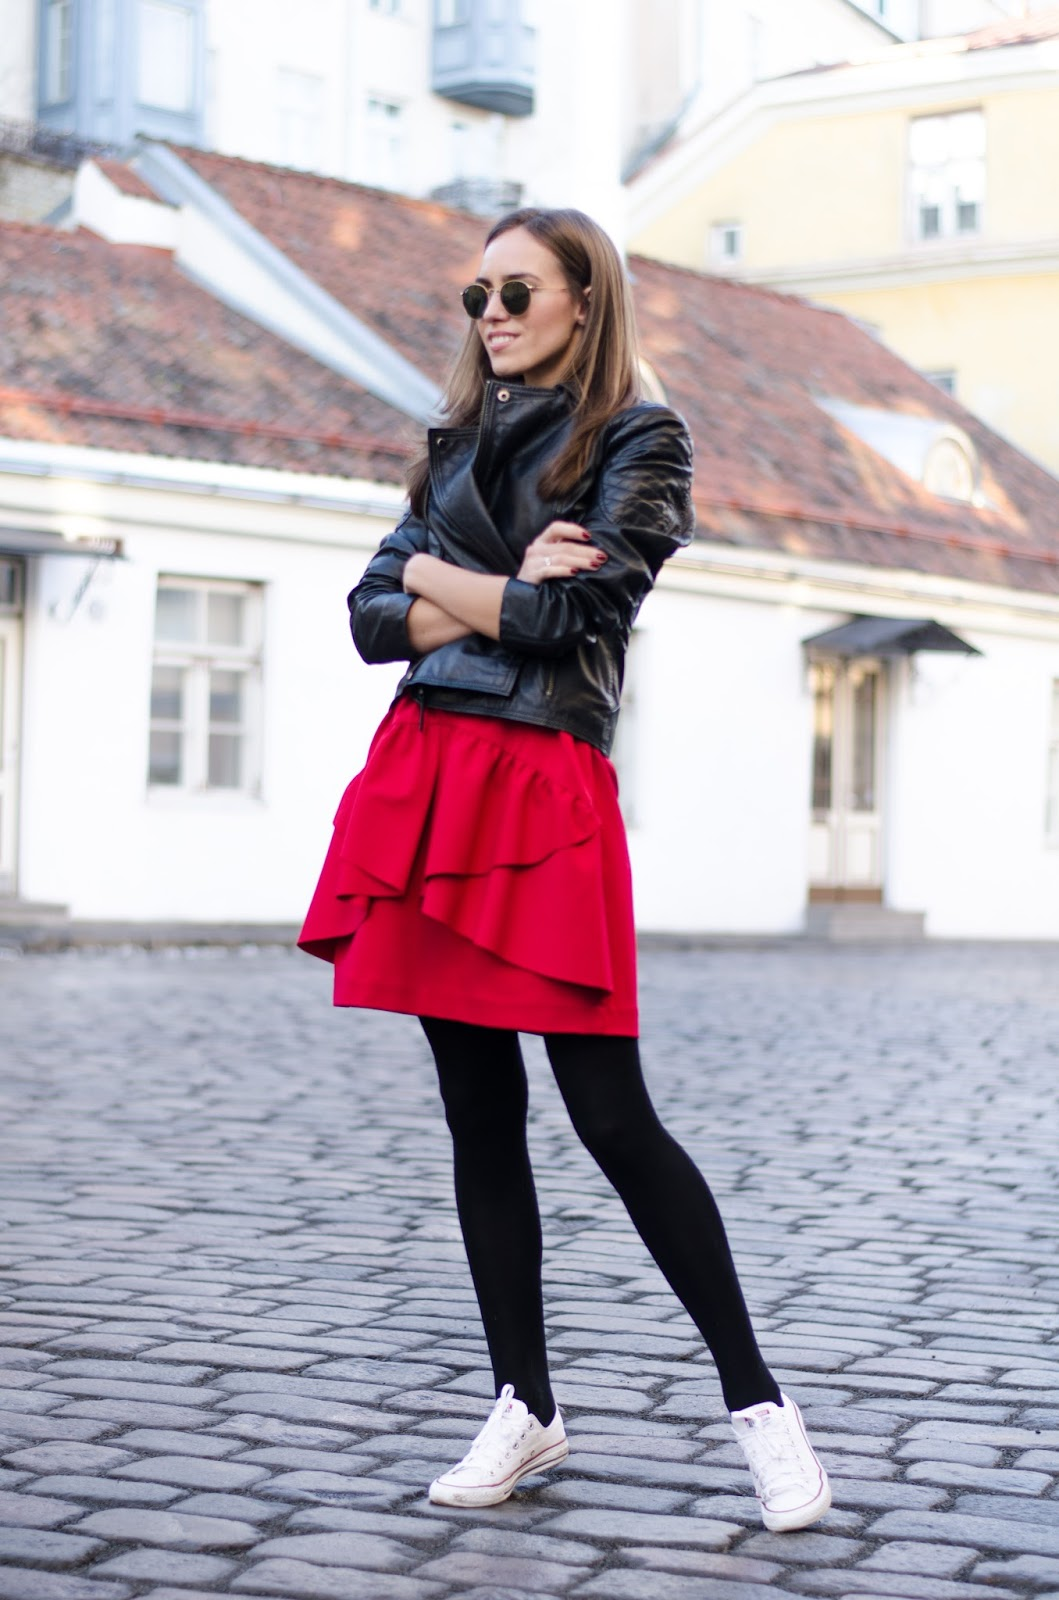 kristjaana mere red dress sneakers leather jacket outfit